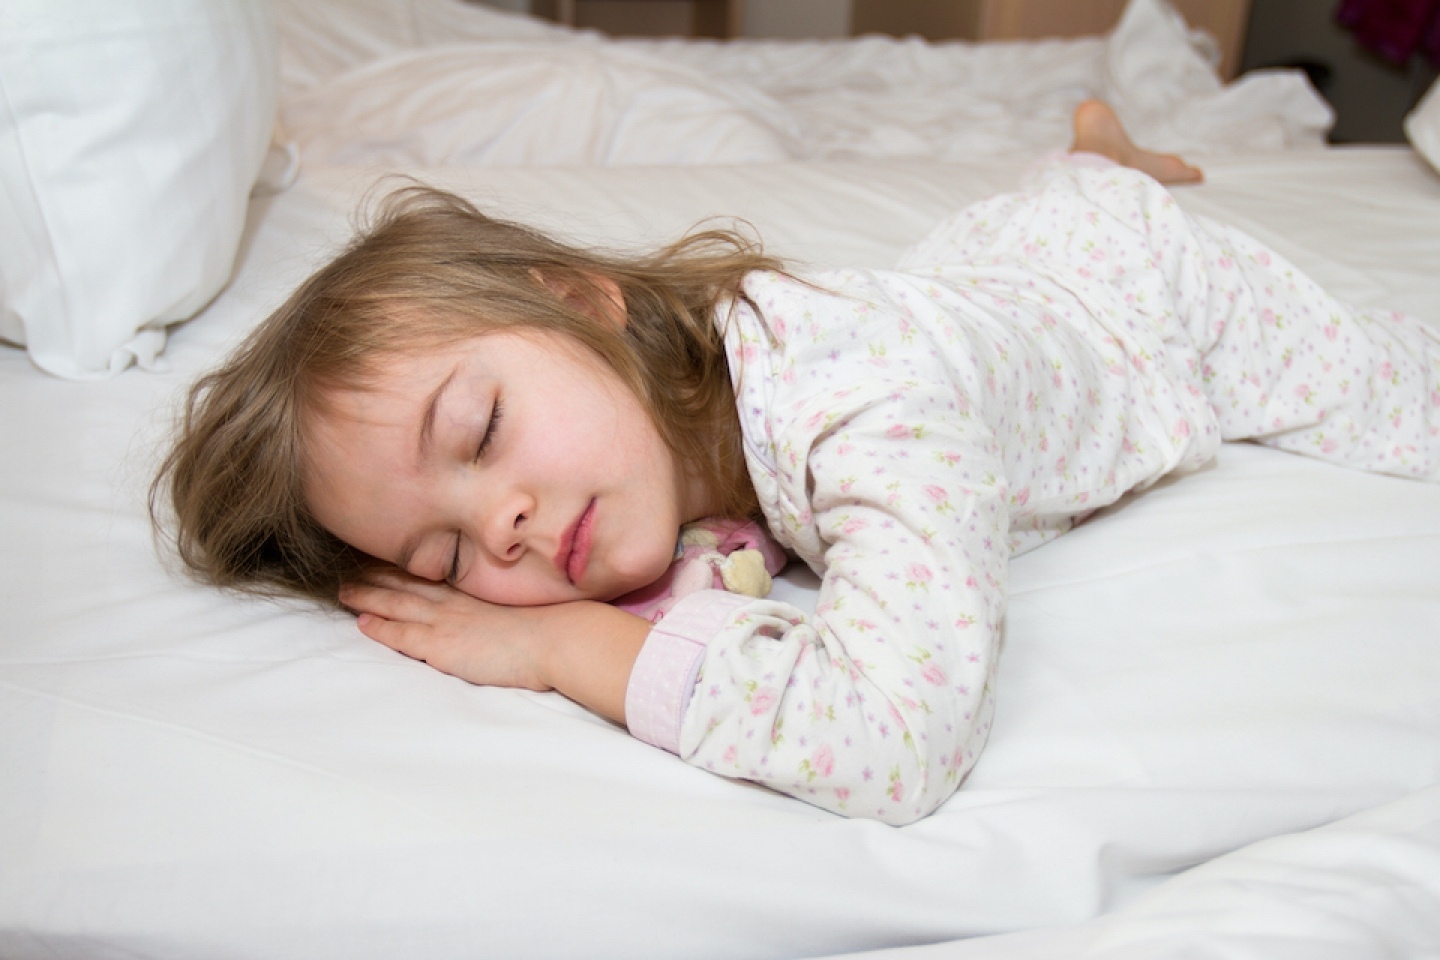 young child sleeping in bed